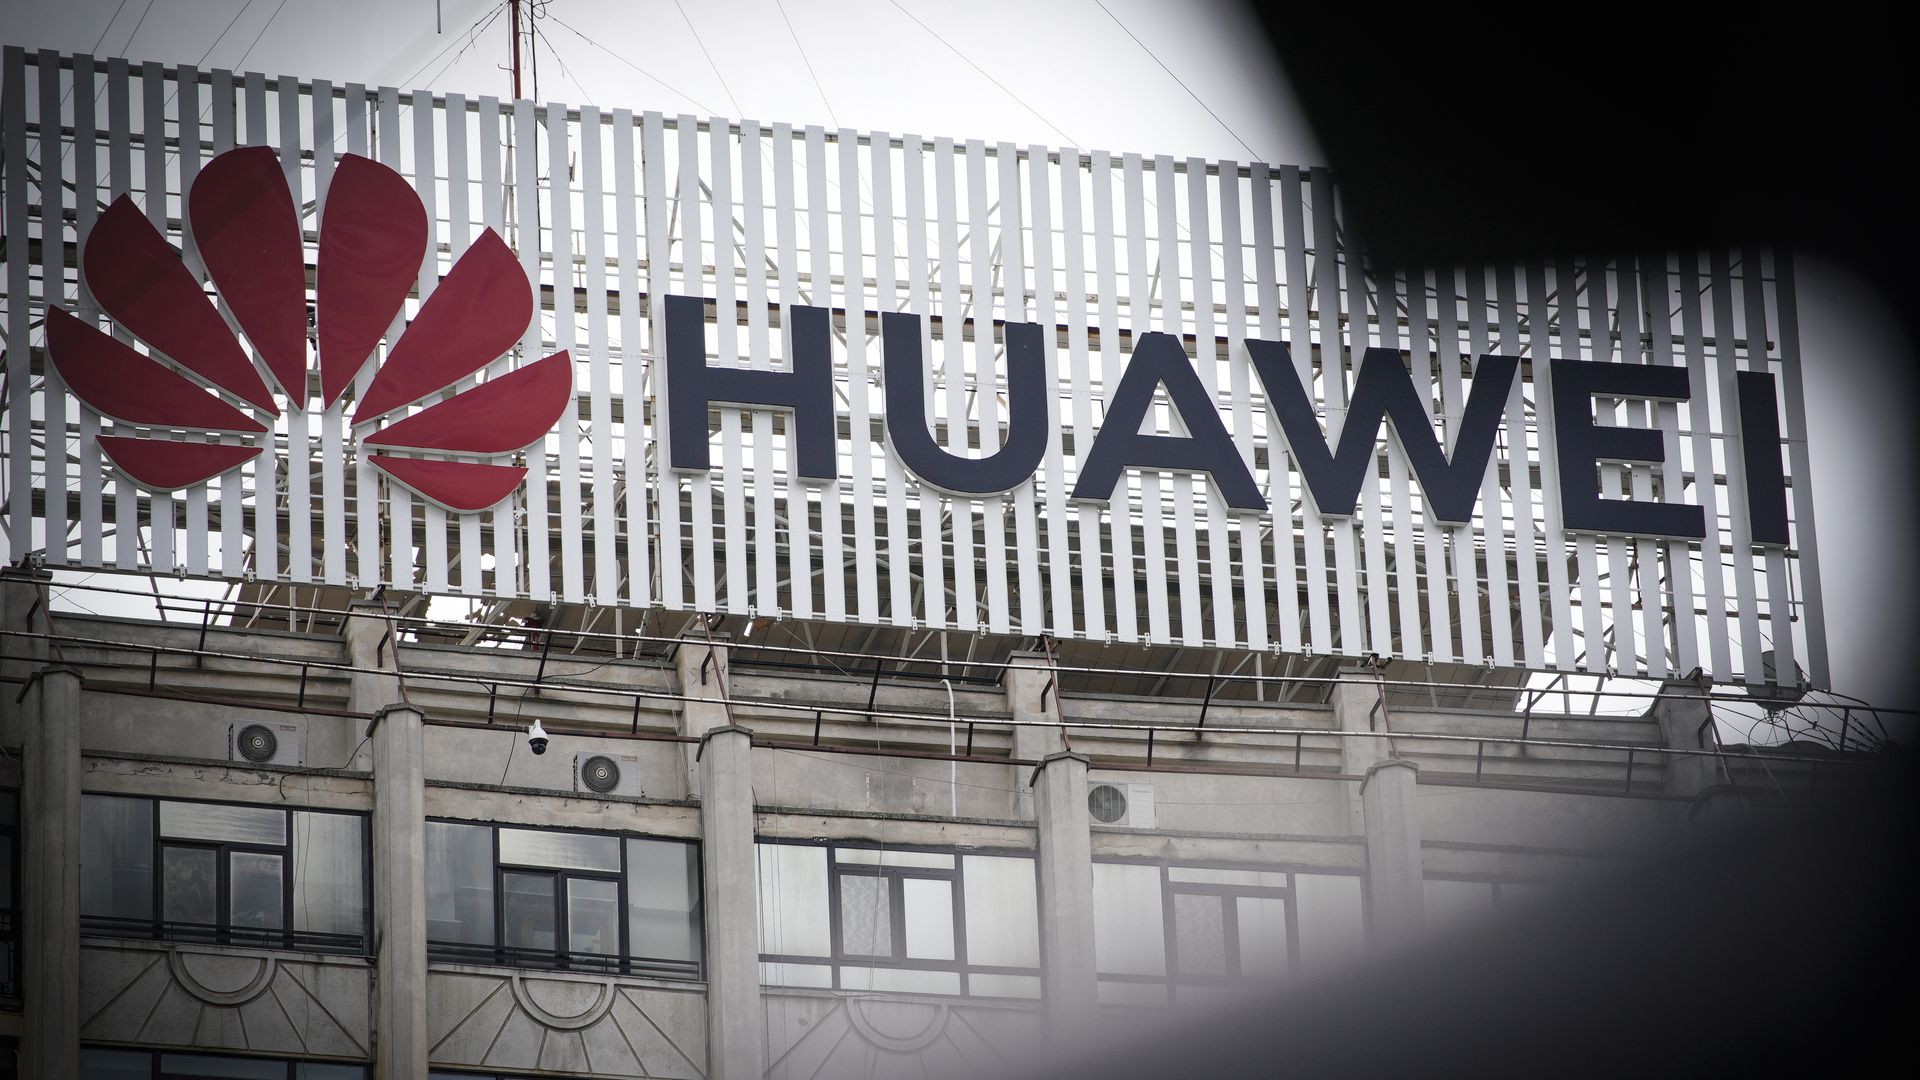 In this image, the Huawei sign and logo is displayed prominently on a building.